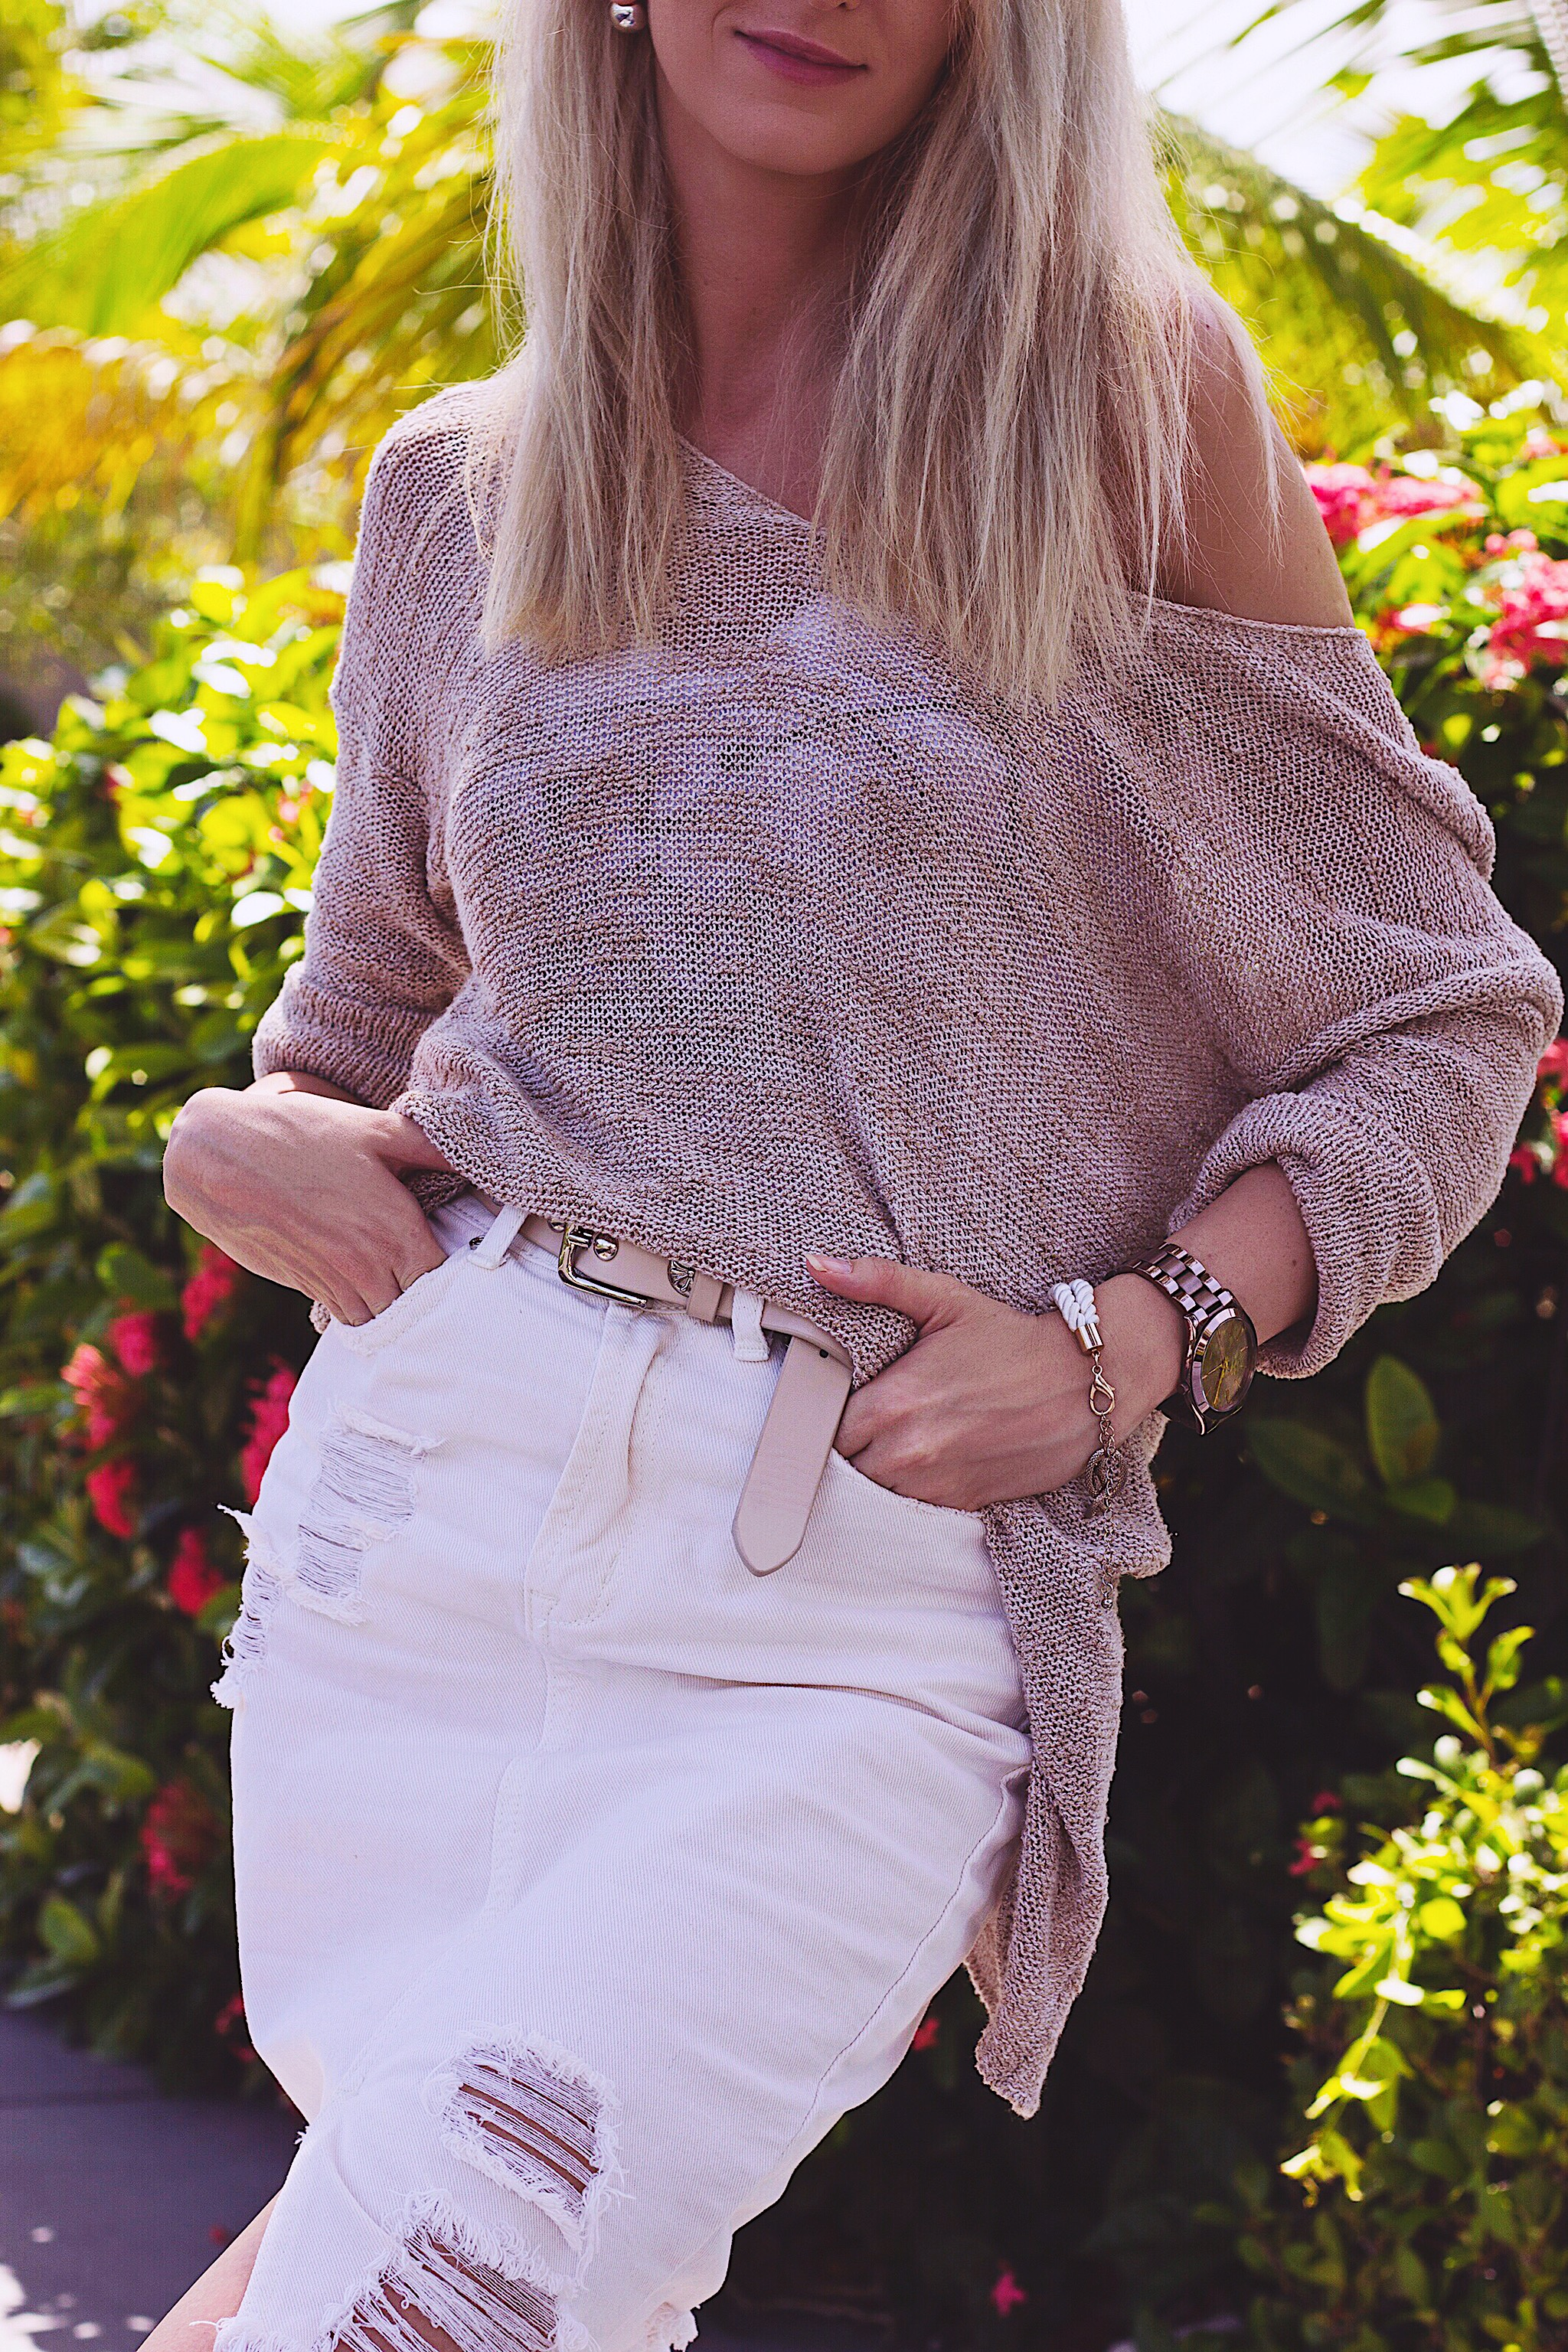 Cozy Knit Distressed Denim Skirt StyleUnsettled